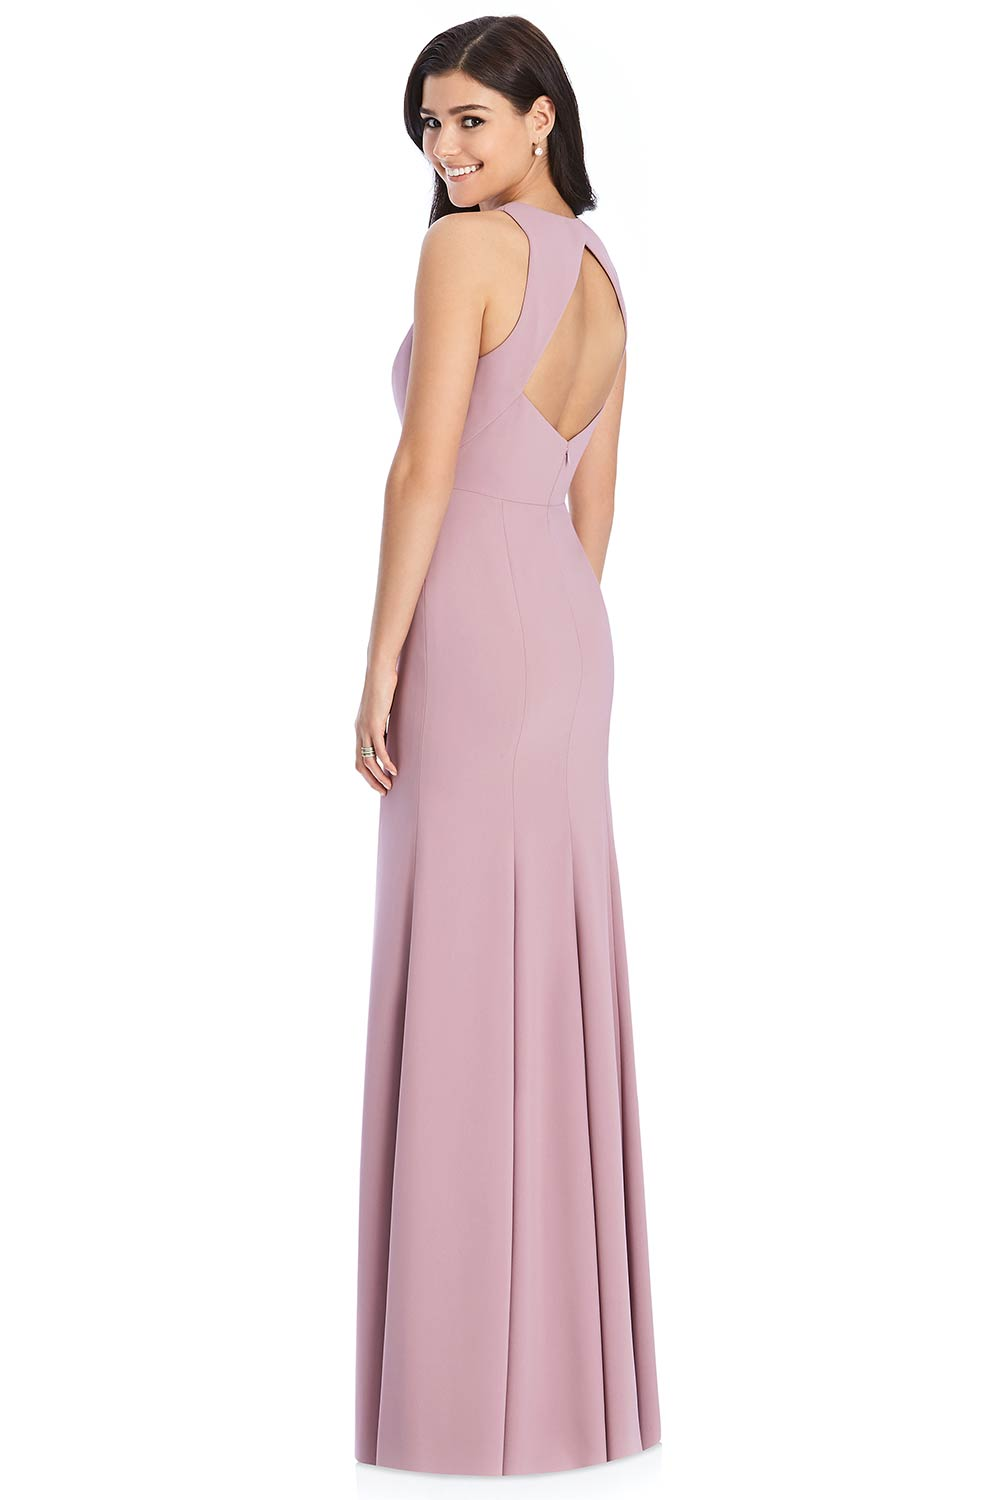 bridesmaid-dresses-dessy-26454